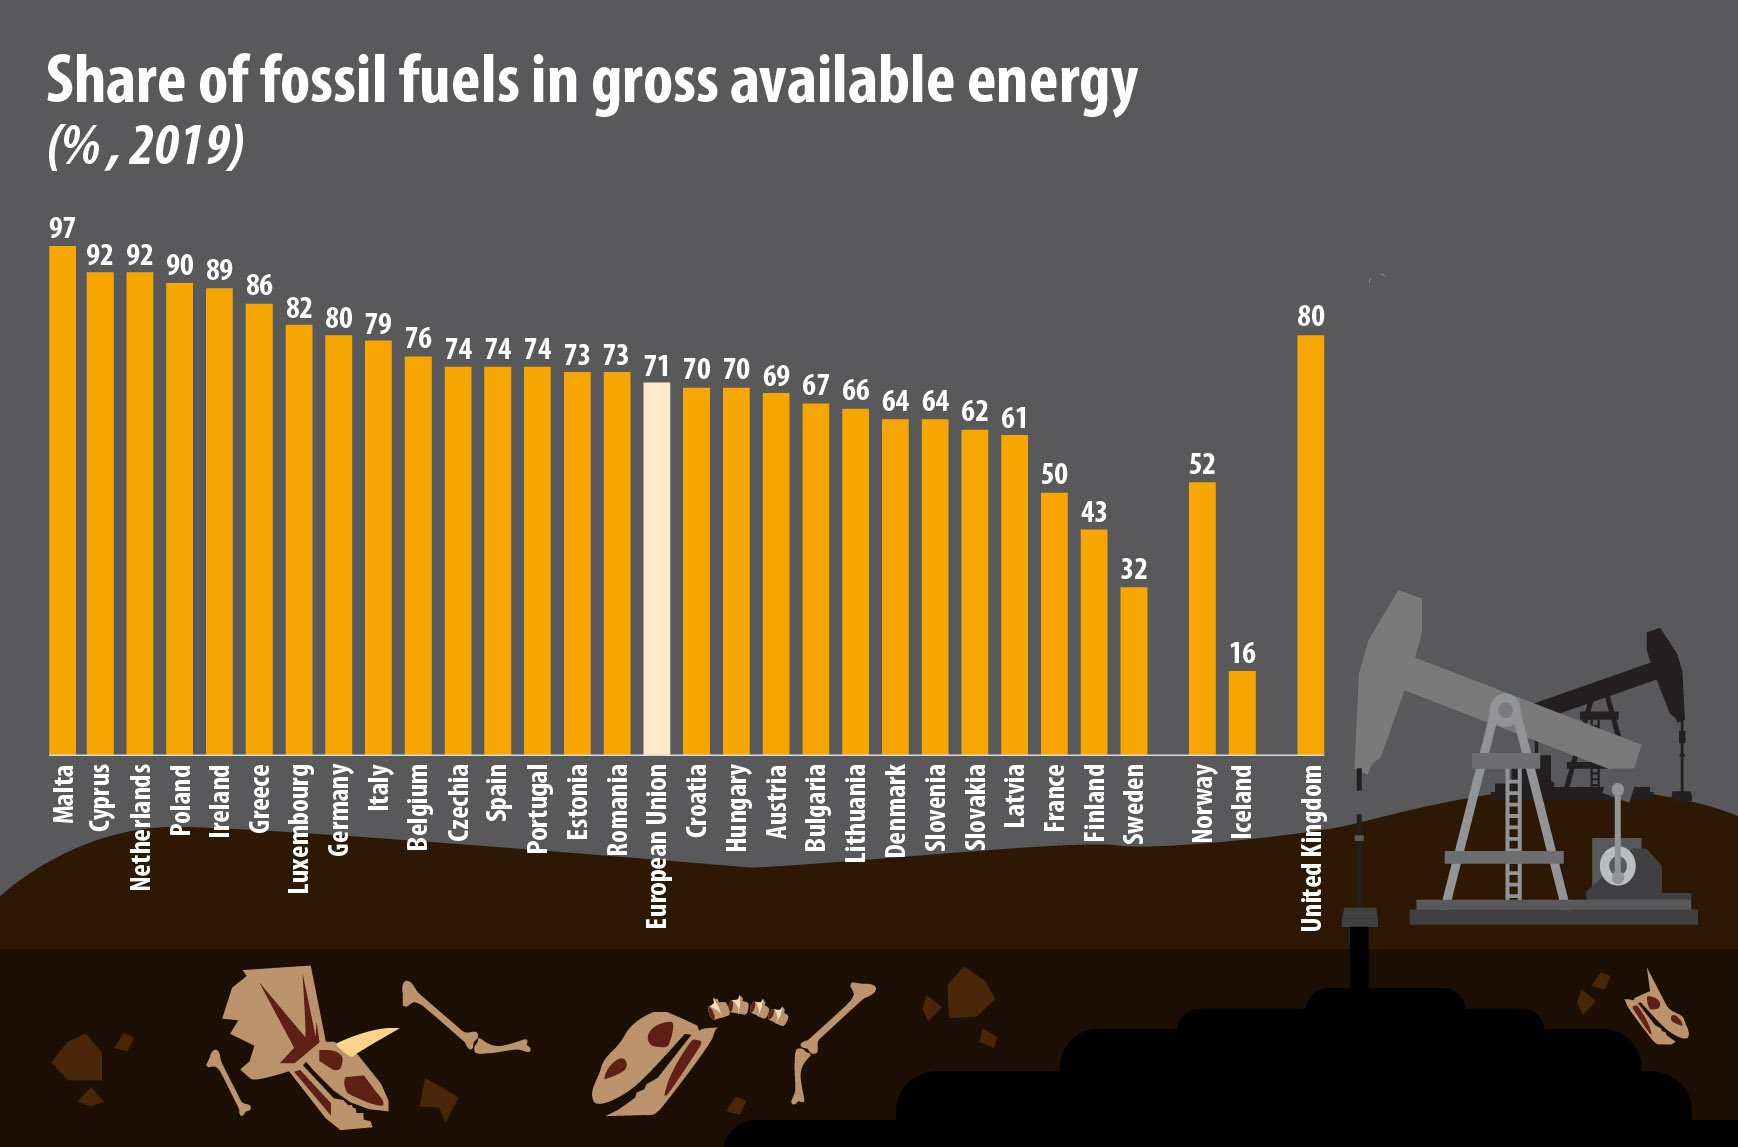 Cyprus has second highest fossil fuel share in EU